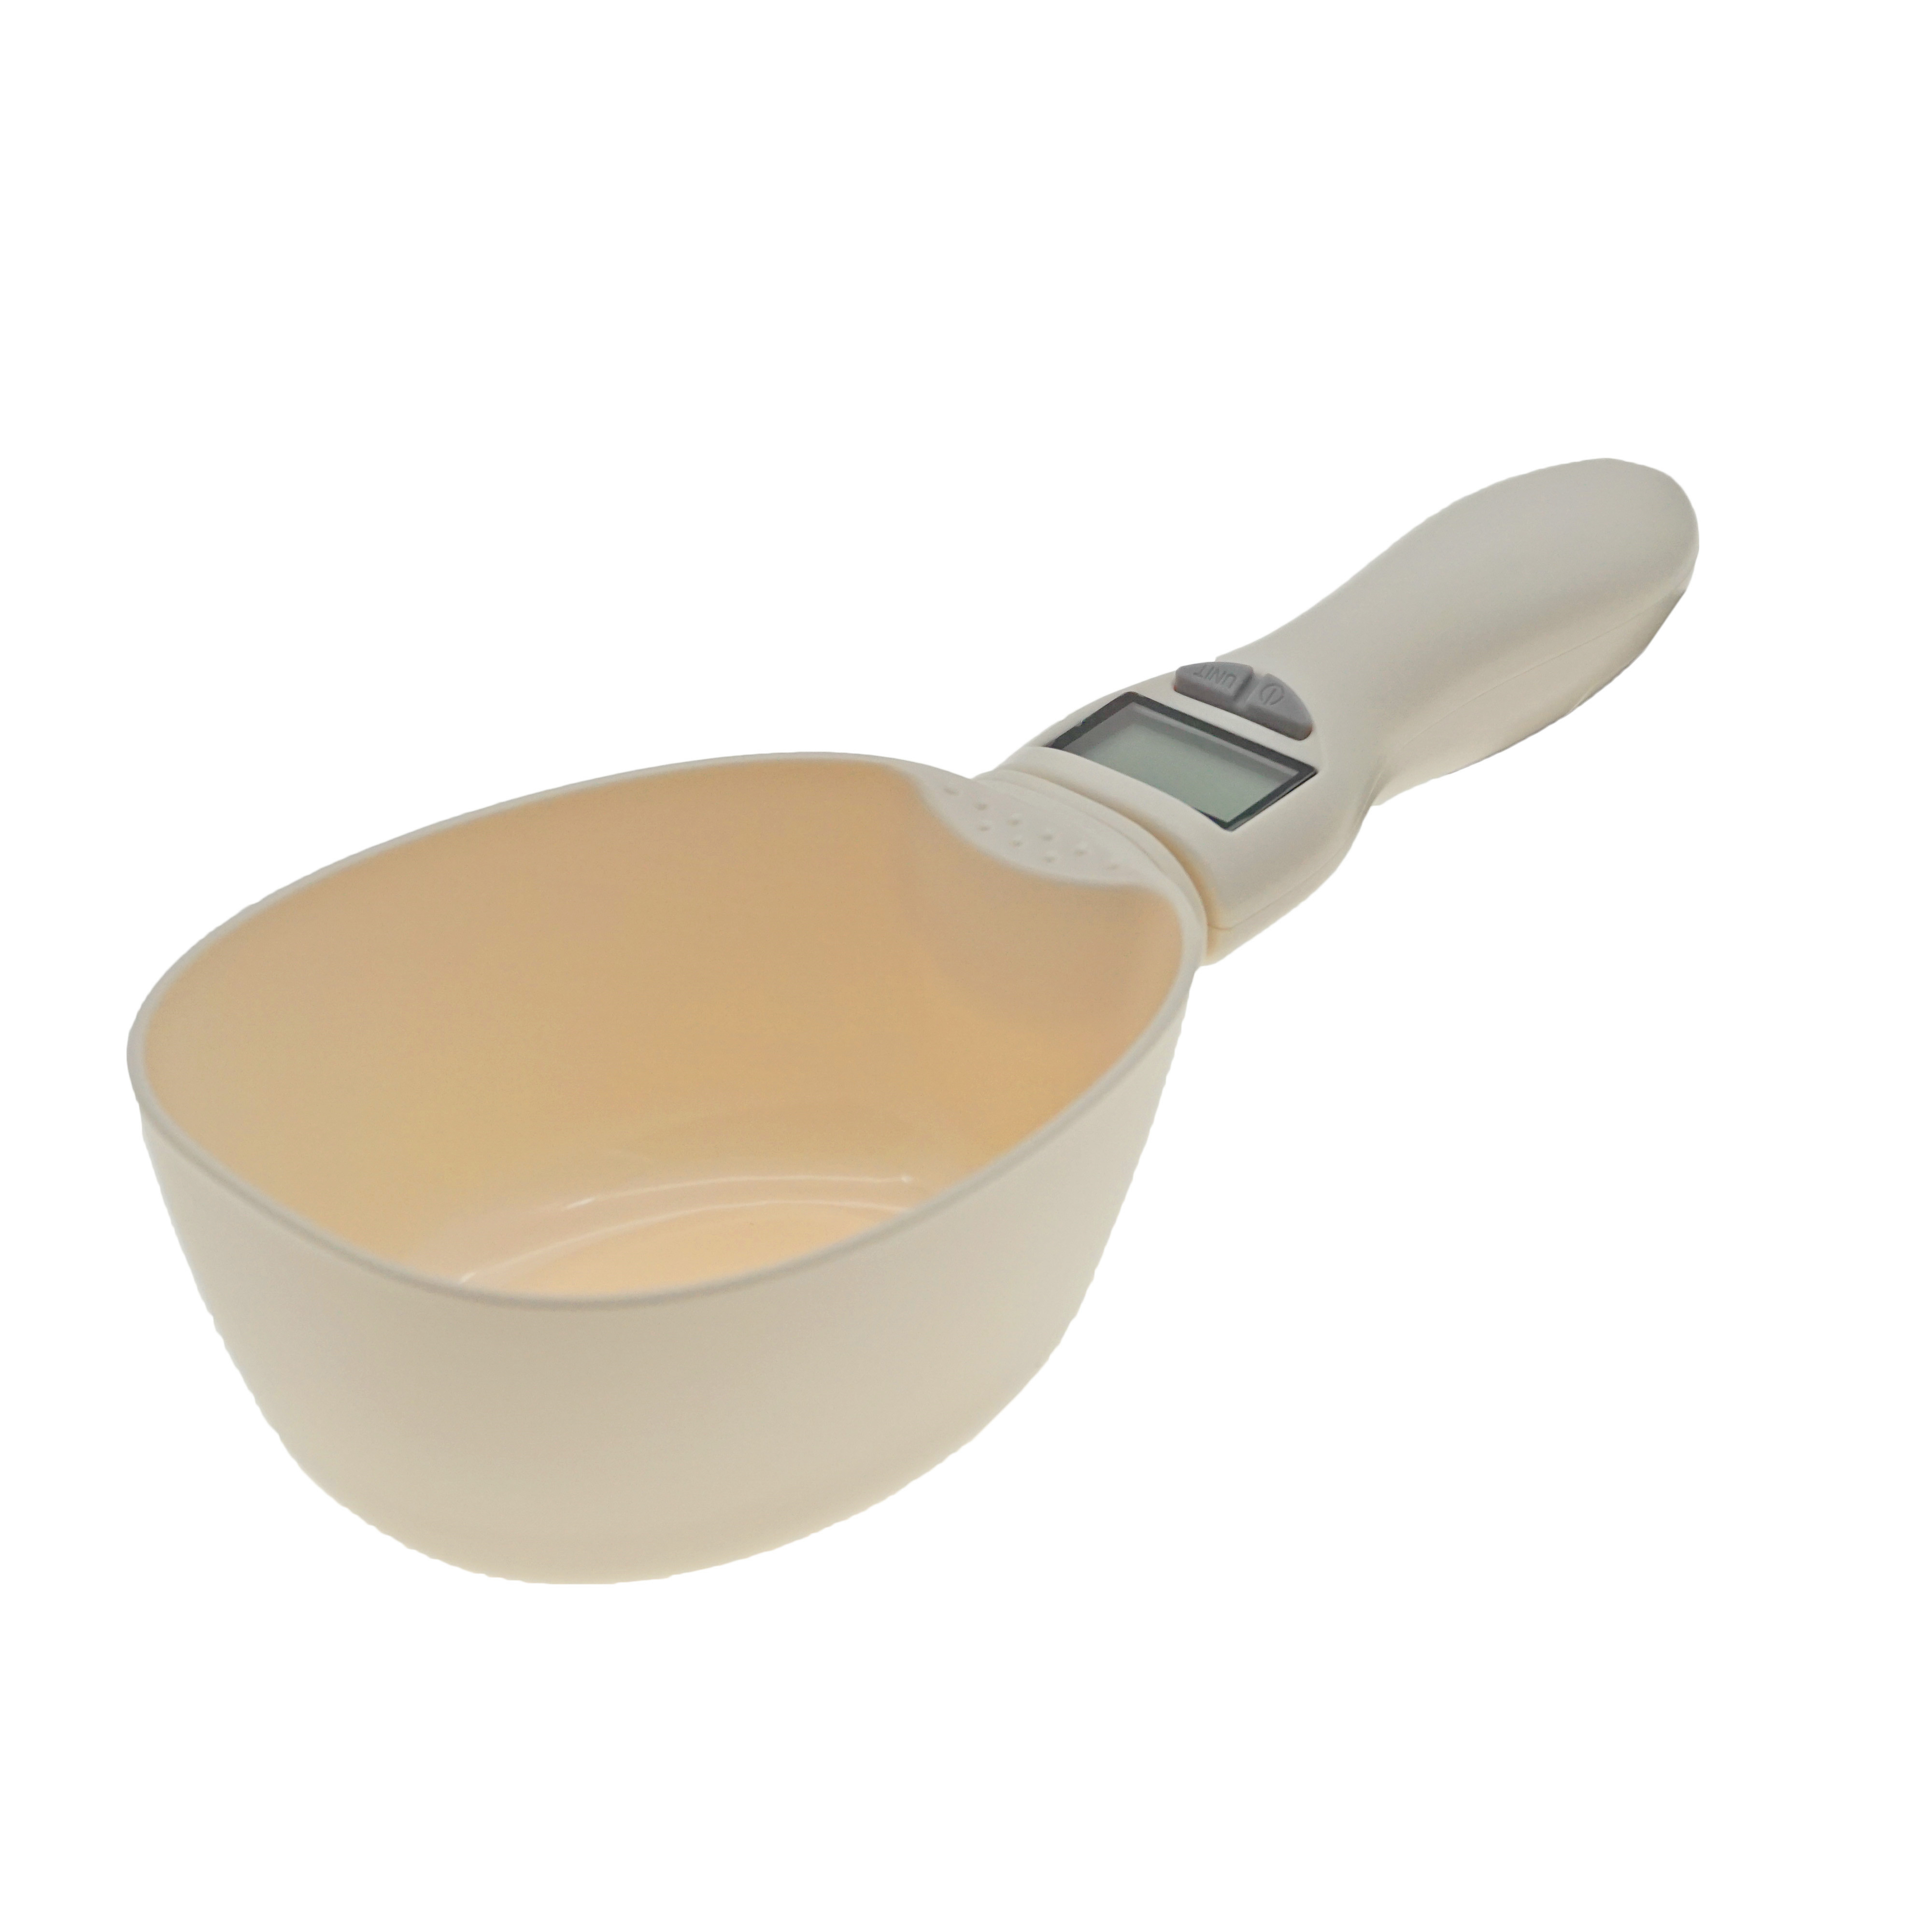 Pet Food Measuring Spoon With LCD Display